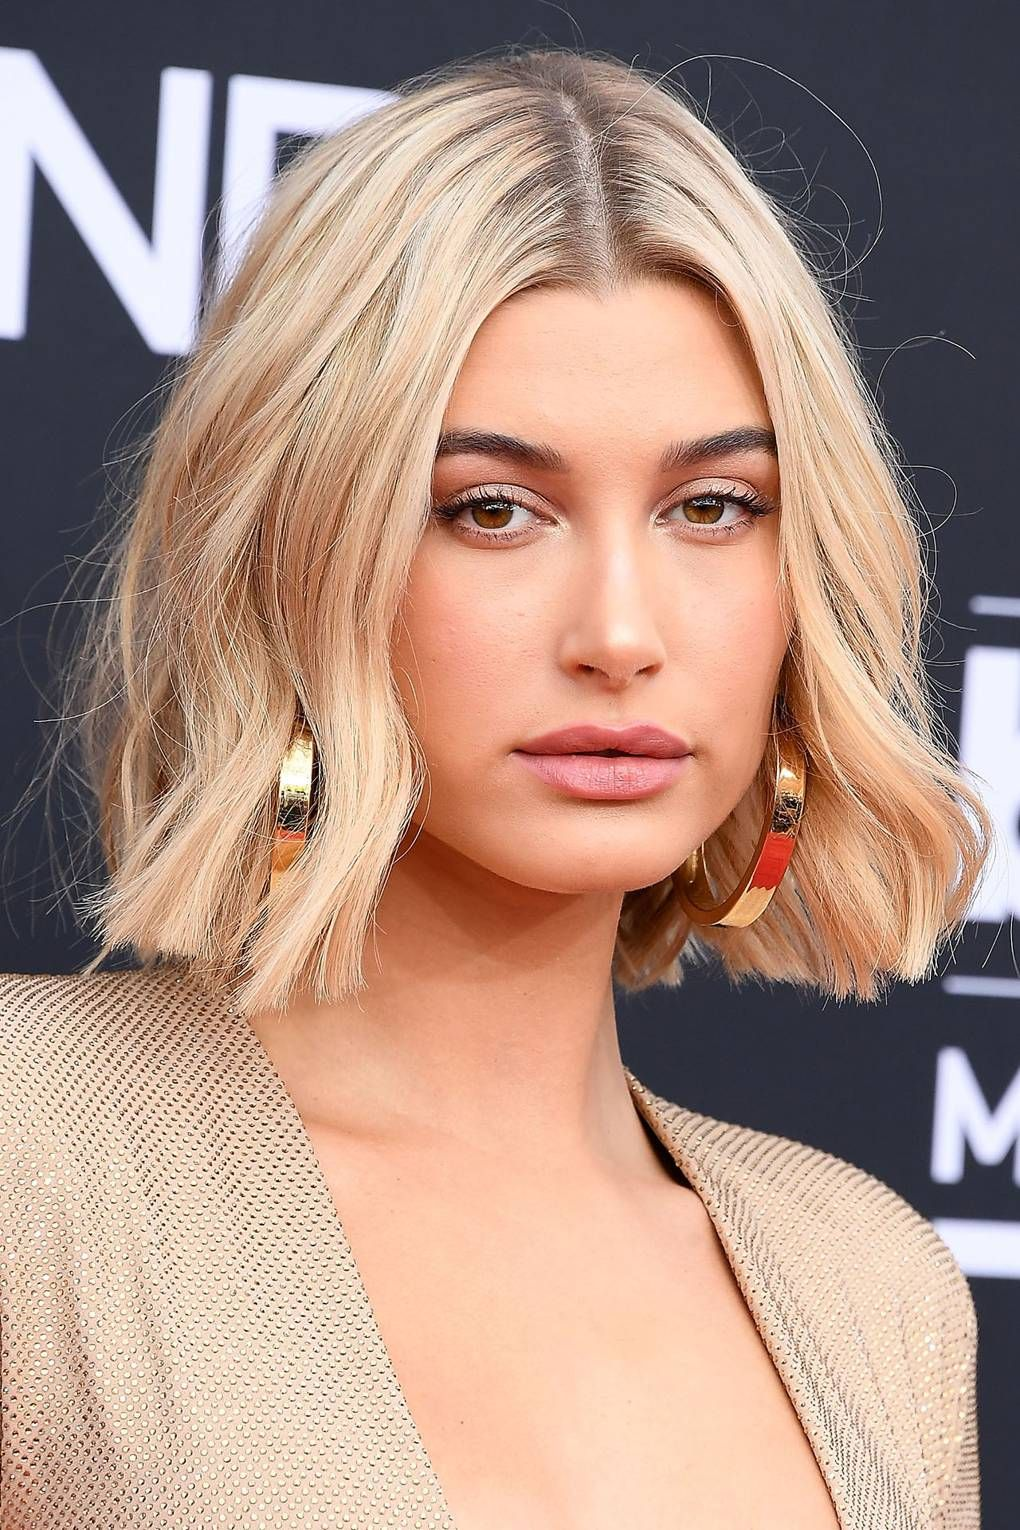 Hailey Bieber S Best Beauty Looks Of All Time Hailey